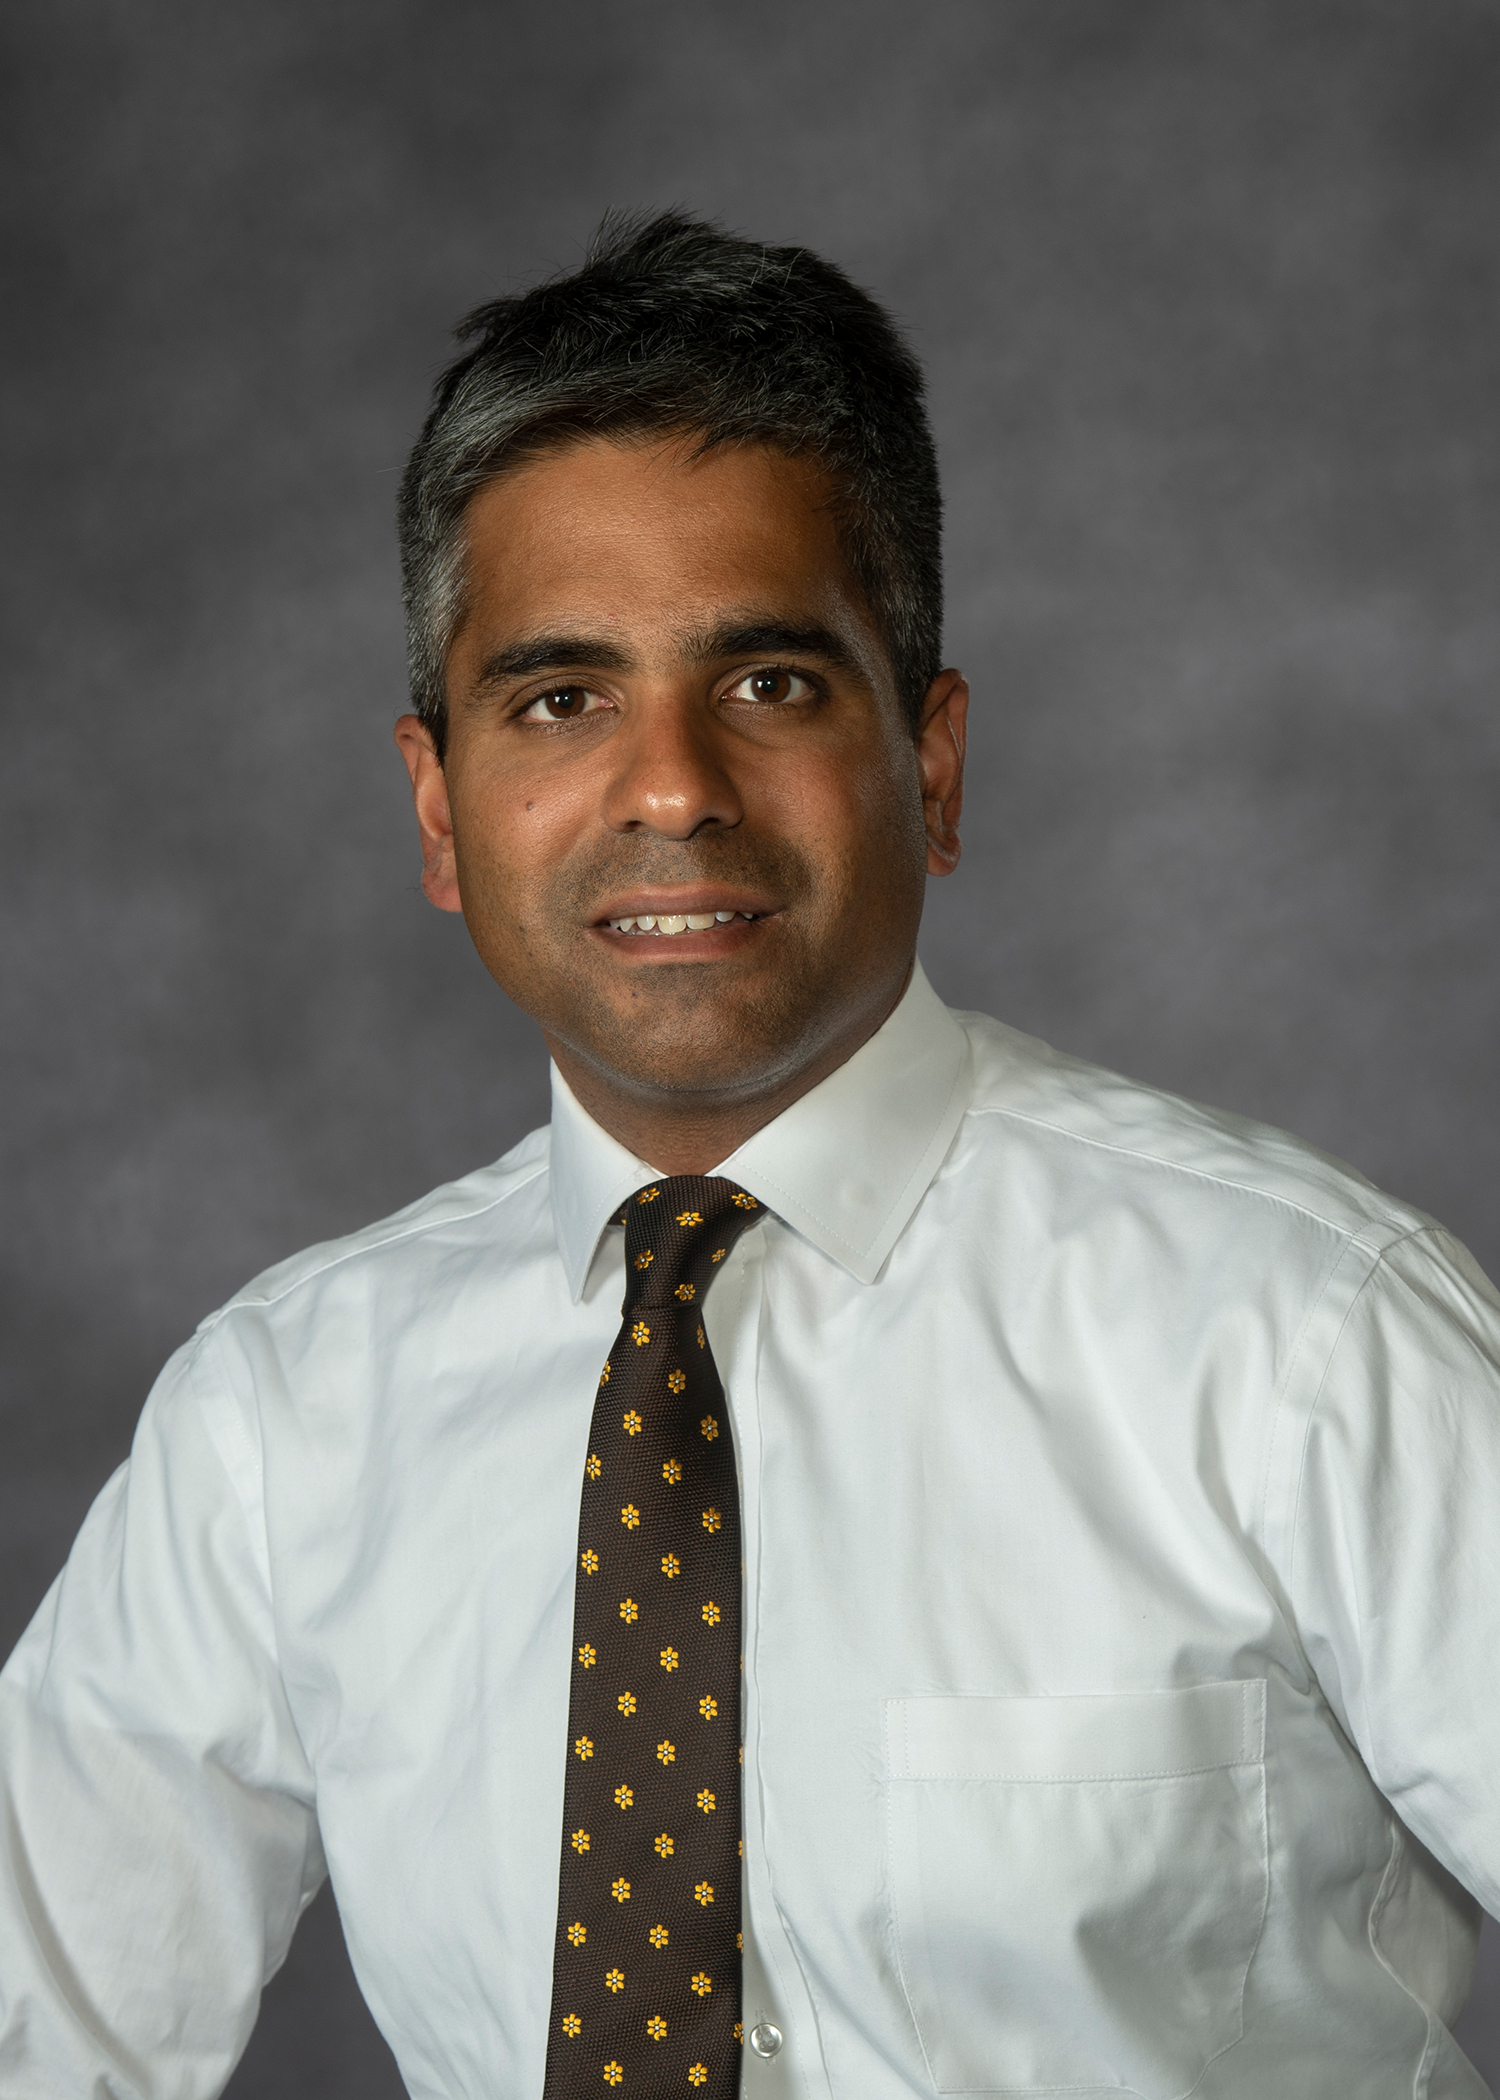 Rahul J  Anand, M D  - Faculty Profile - Department of